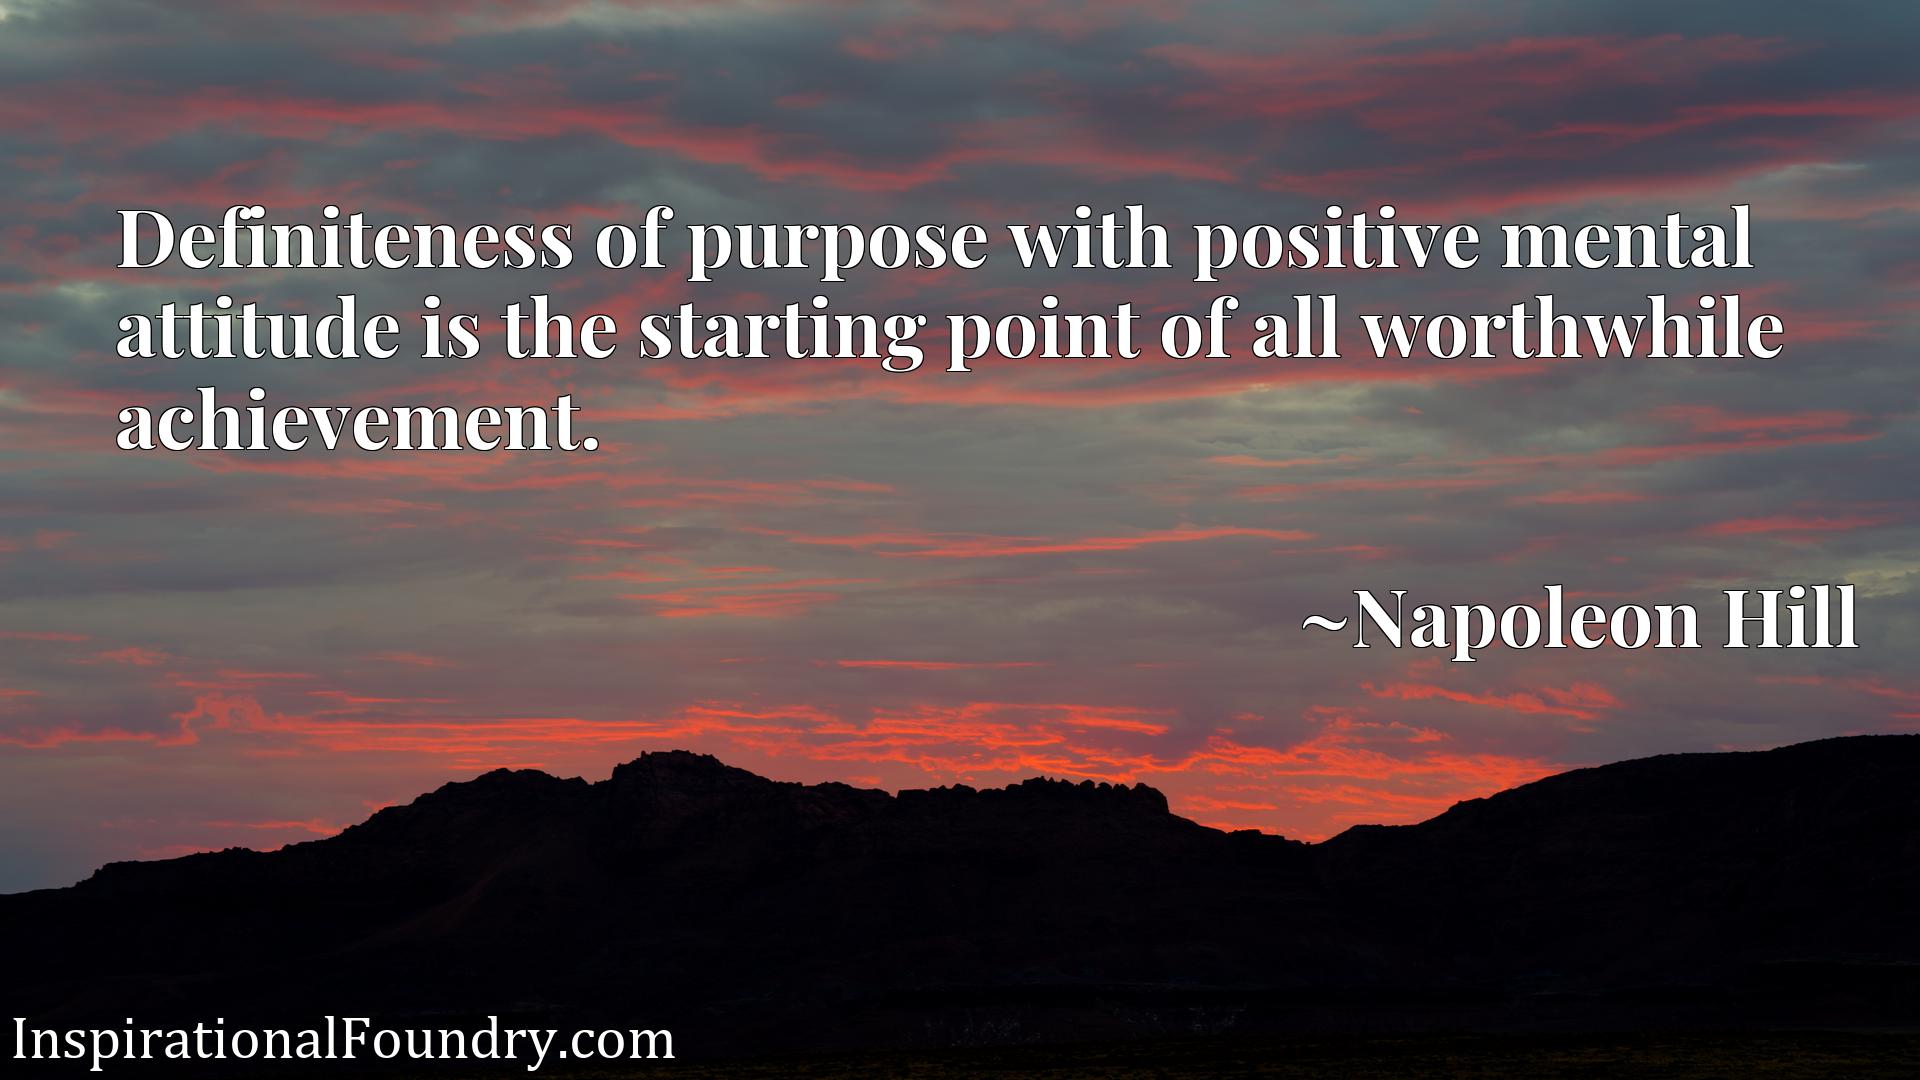 Definiteness of purpose with positive mental attitude is the starting point of all worthwhile achievement.